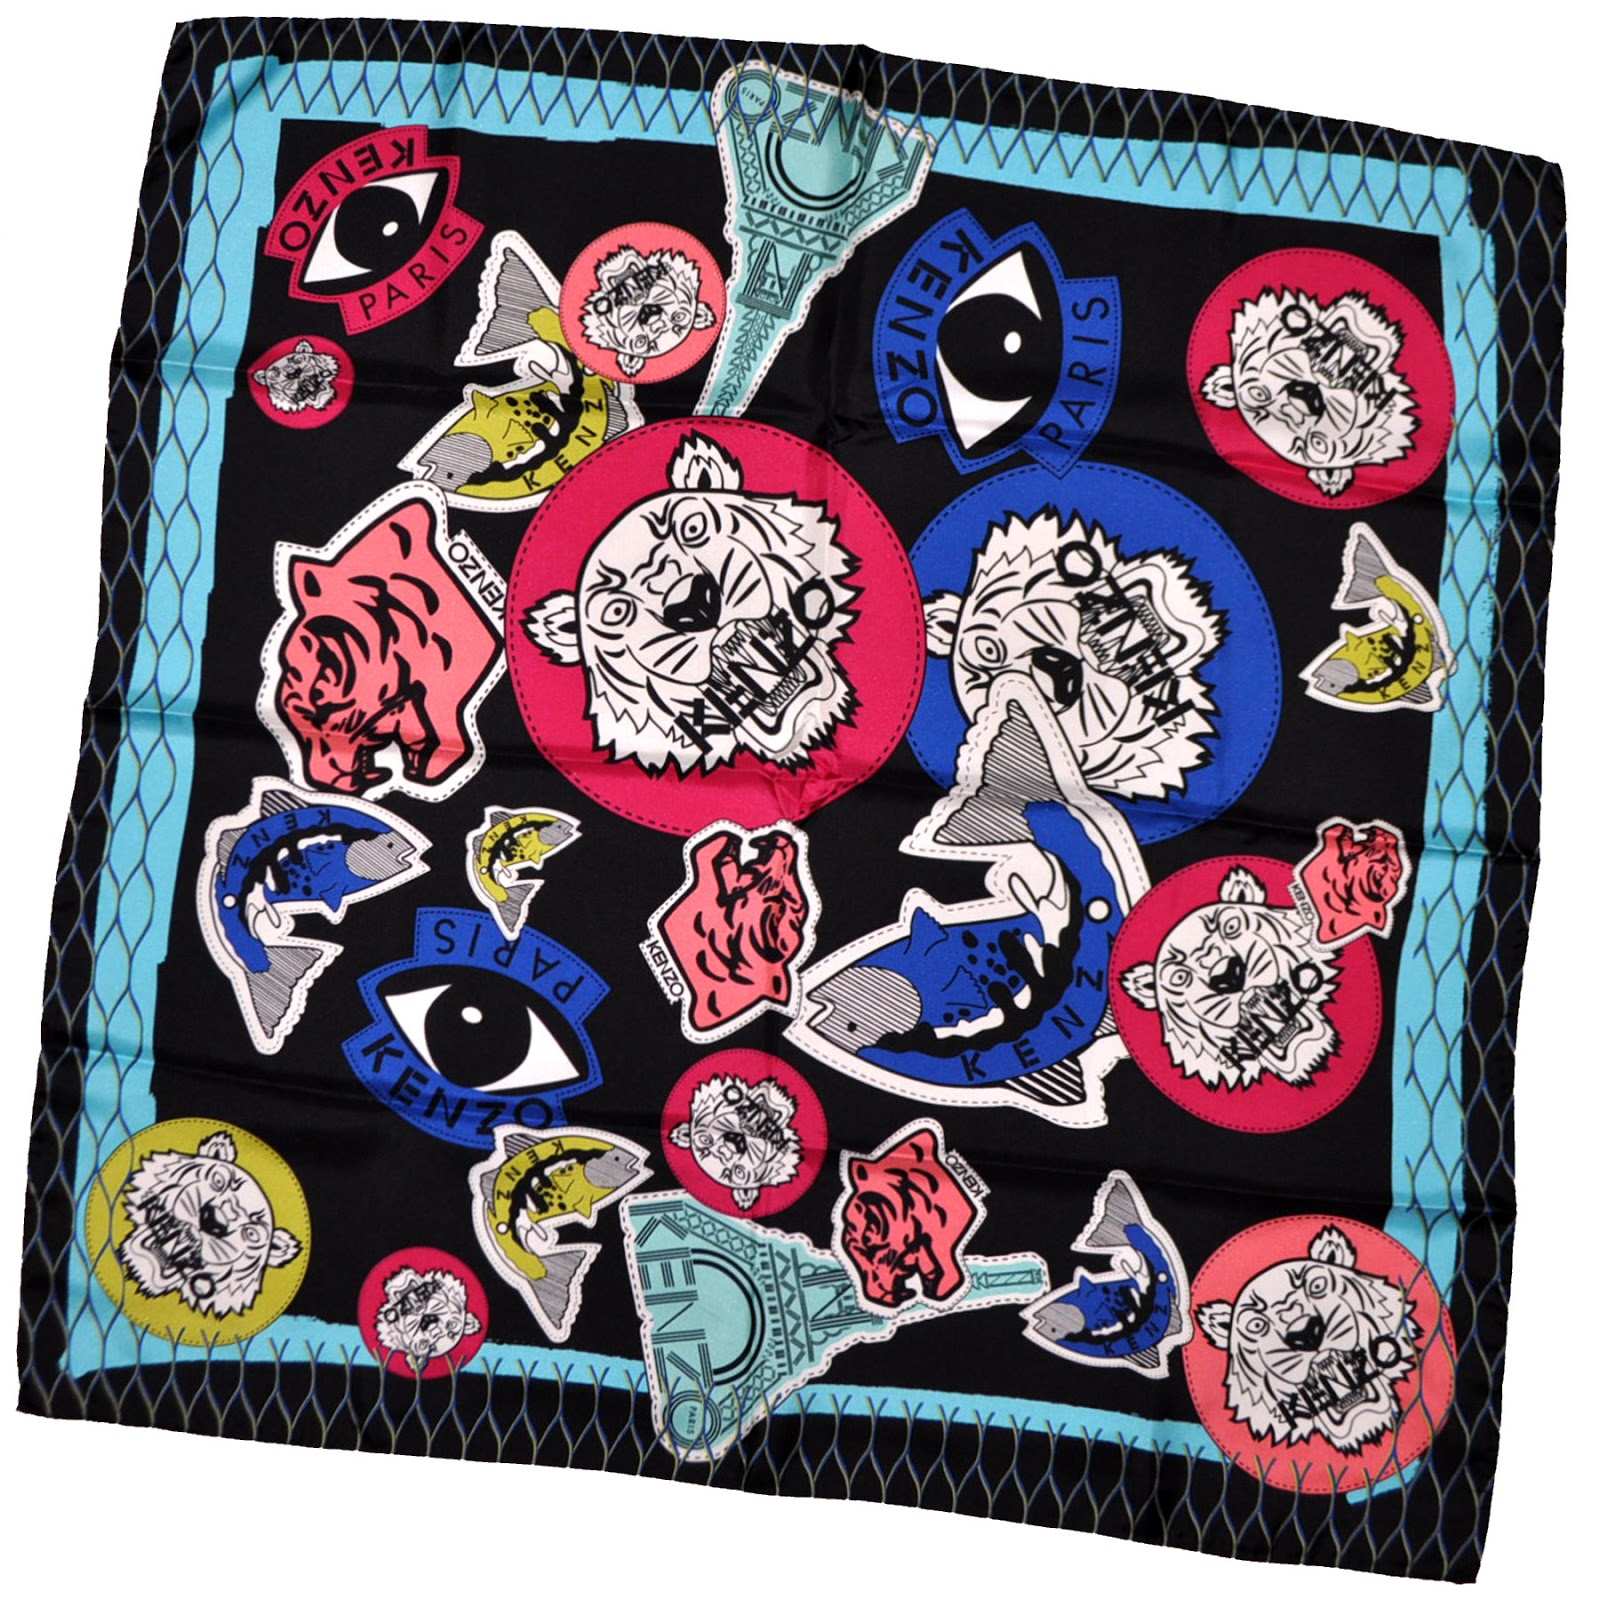 Women Silk Scarves - Gucci Scarves, Versace Scarves ...